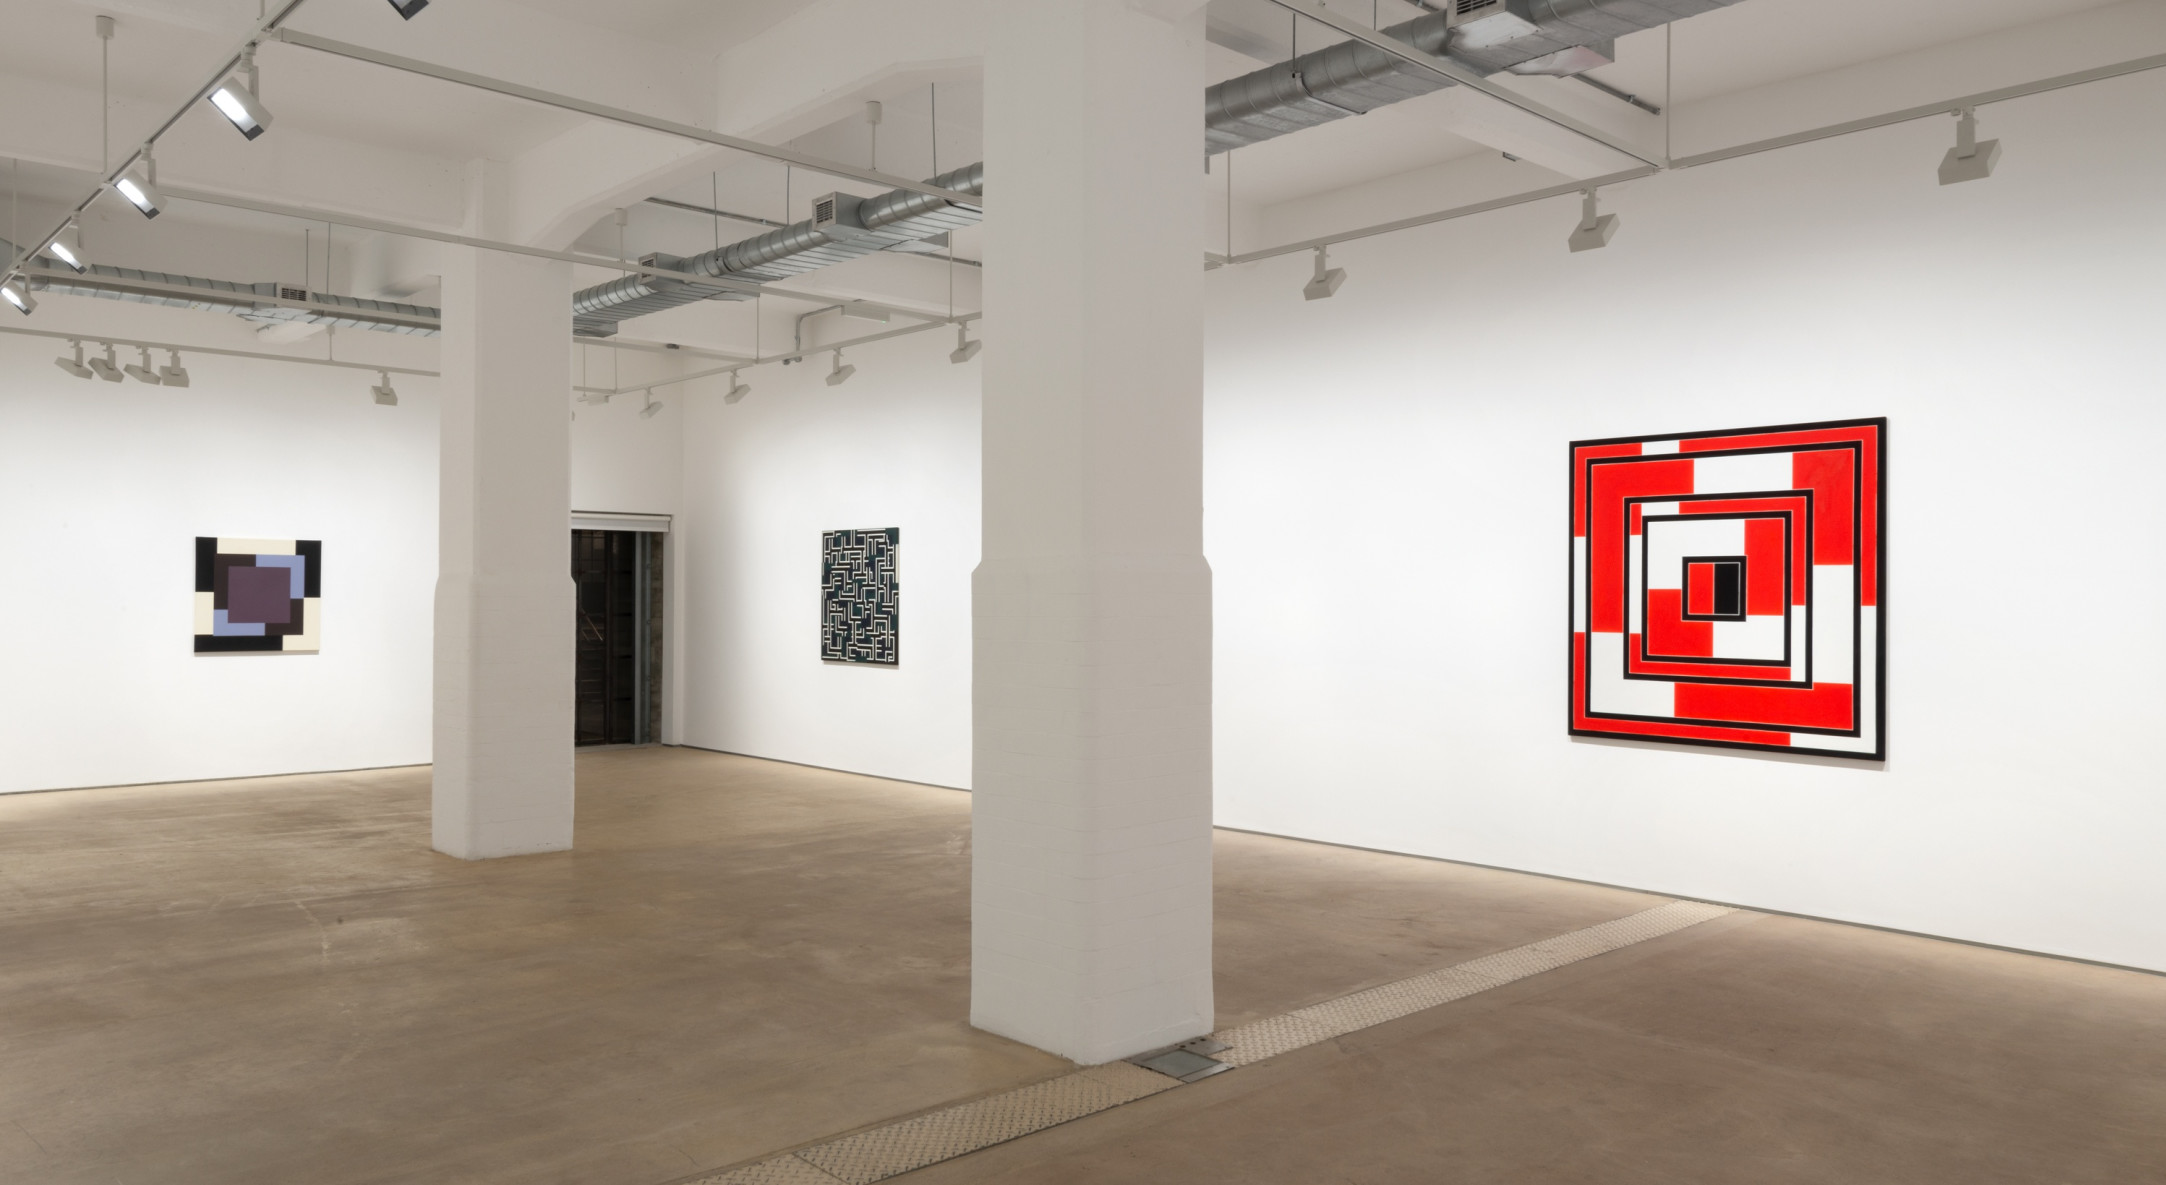 Mary Webb, Extended Square, Hales London, 2021